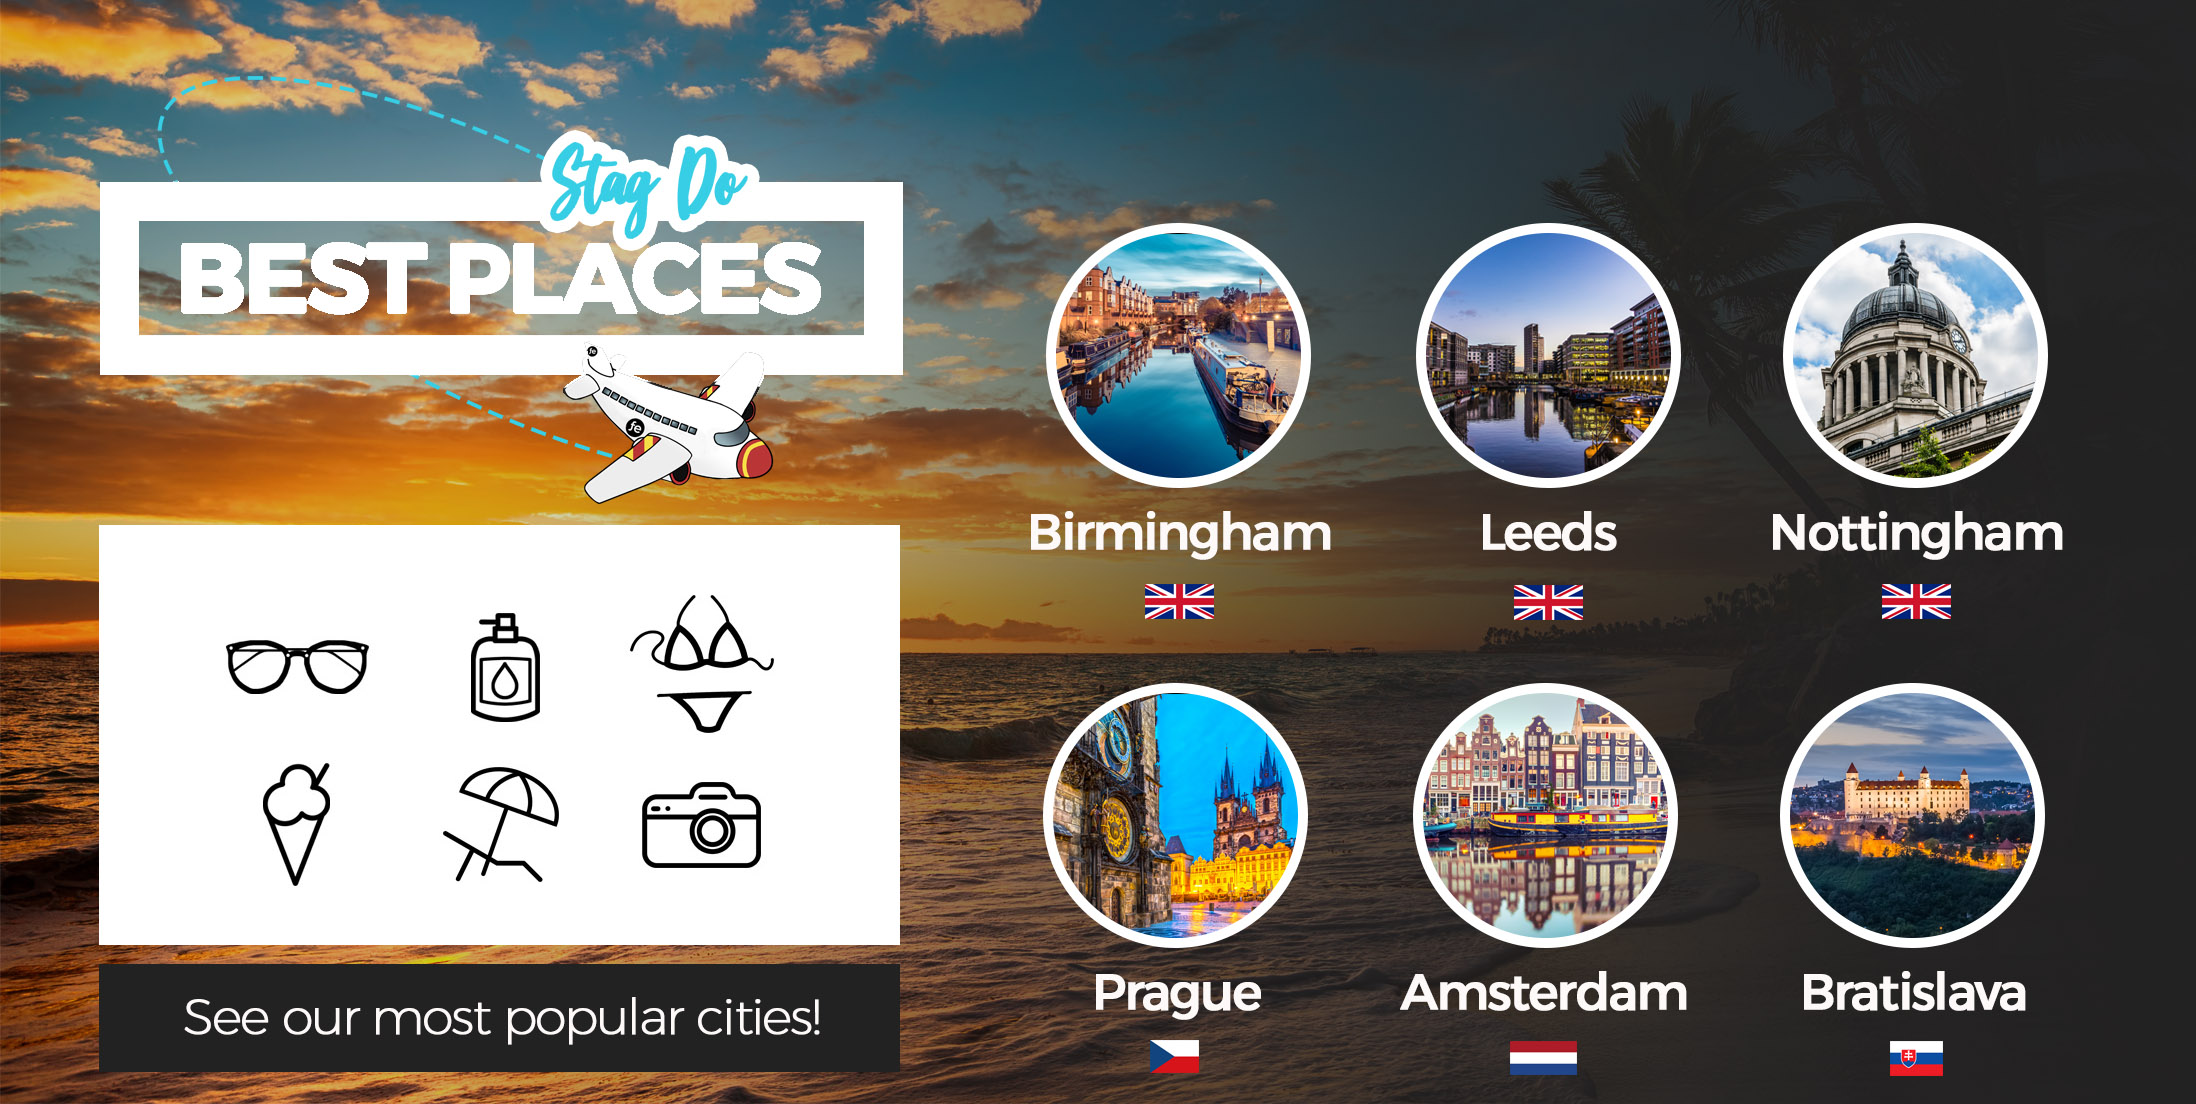 Best Places for Stag Do | See Our Most Popular Cities